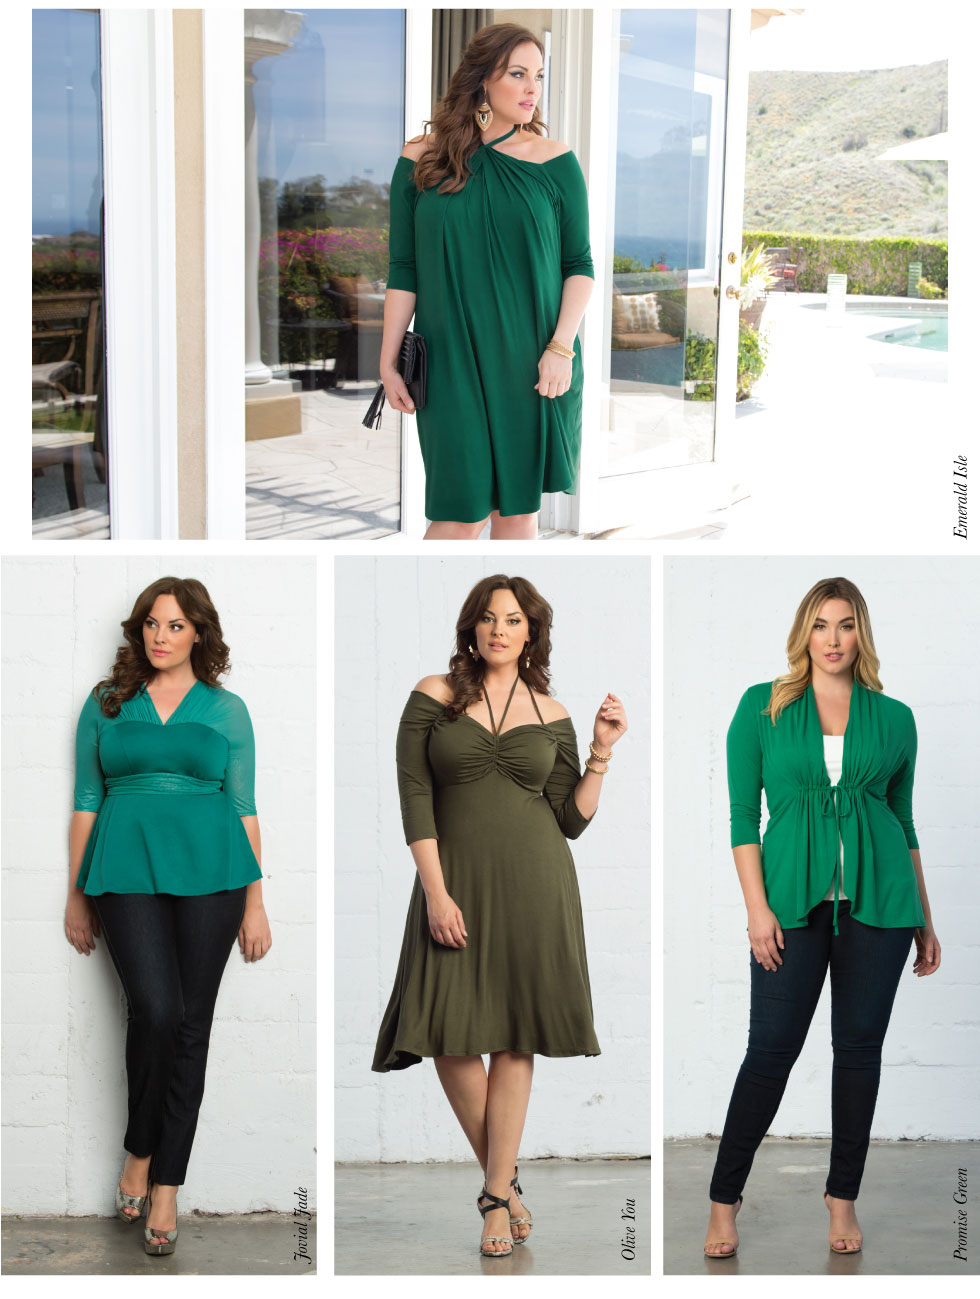 Plus Size Cocktail Dresses in Green